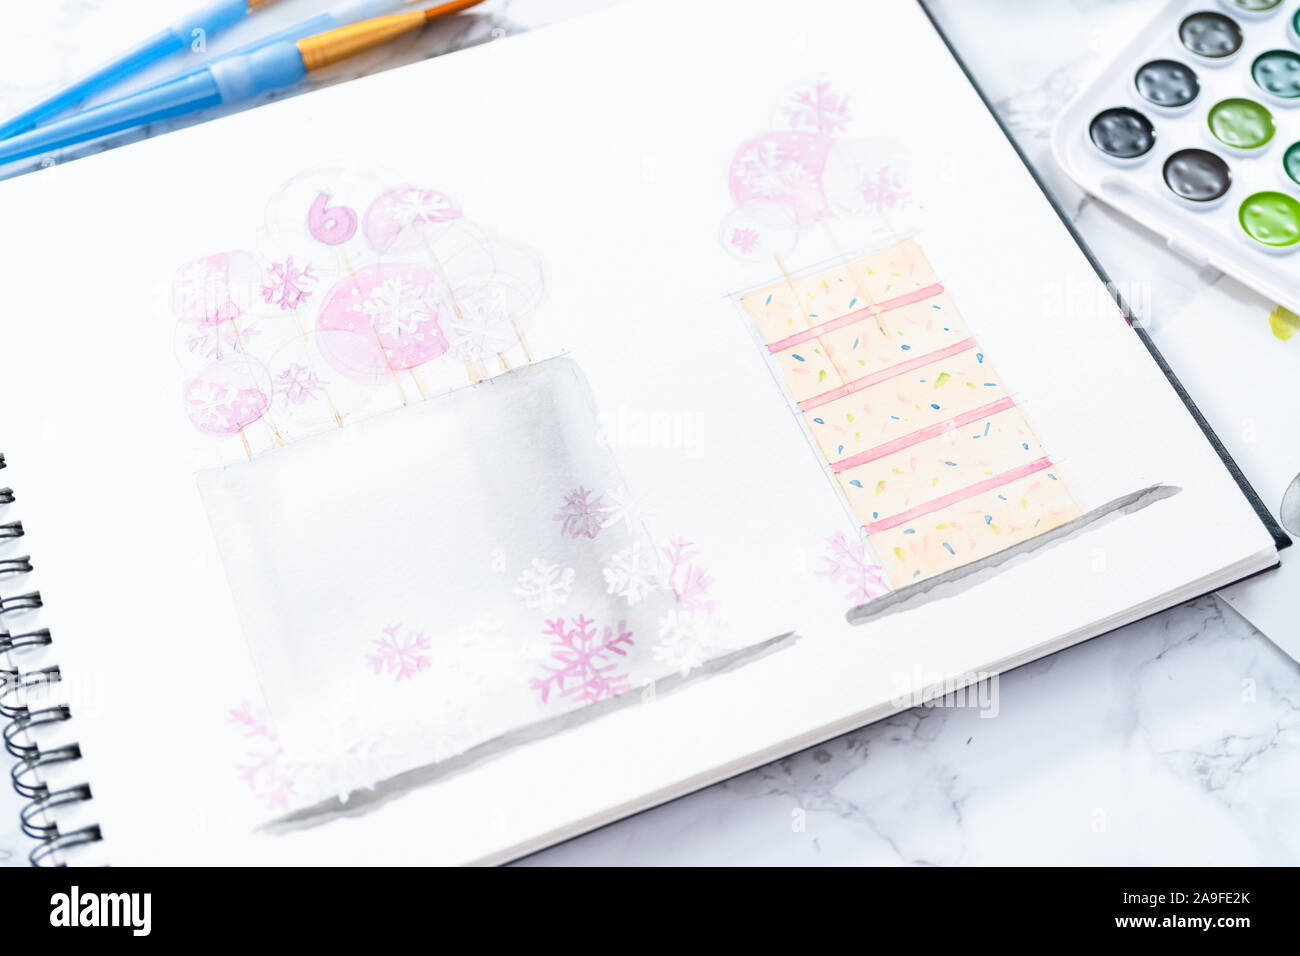 Tremendous Baker Is Designing A Birthday Cake For A Little Girls Birthday Funny Birthday Cards Online Overcheapnameinfo